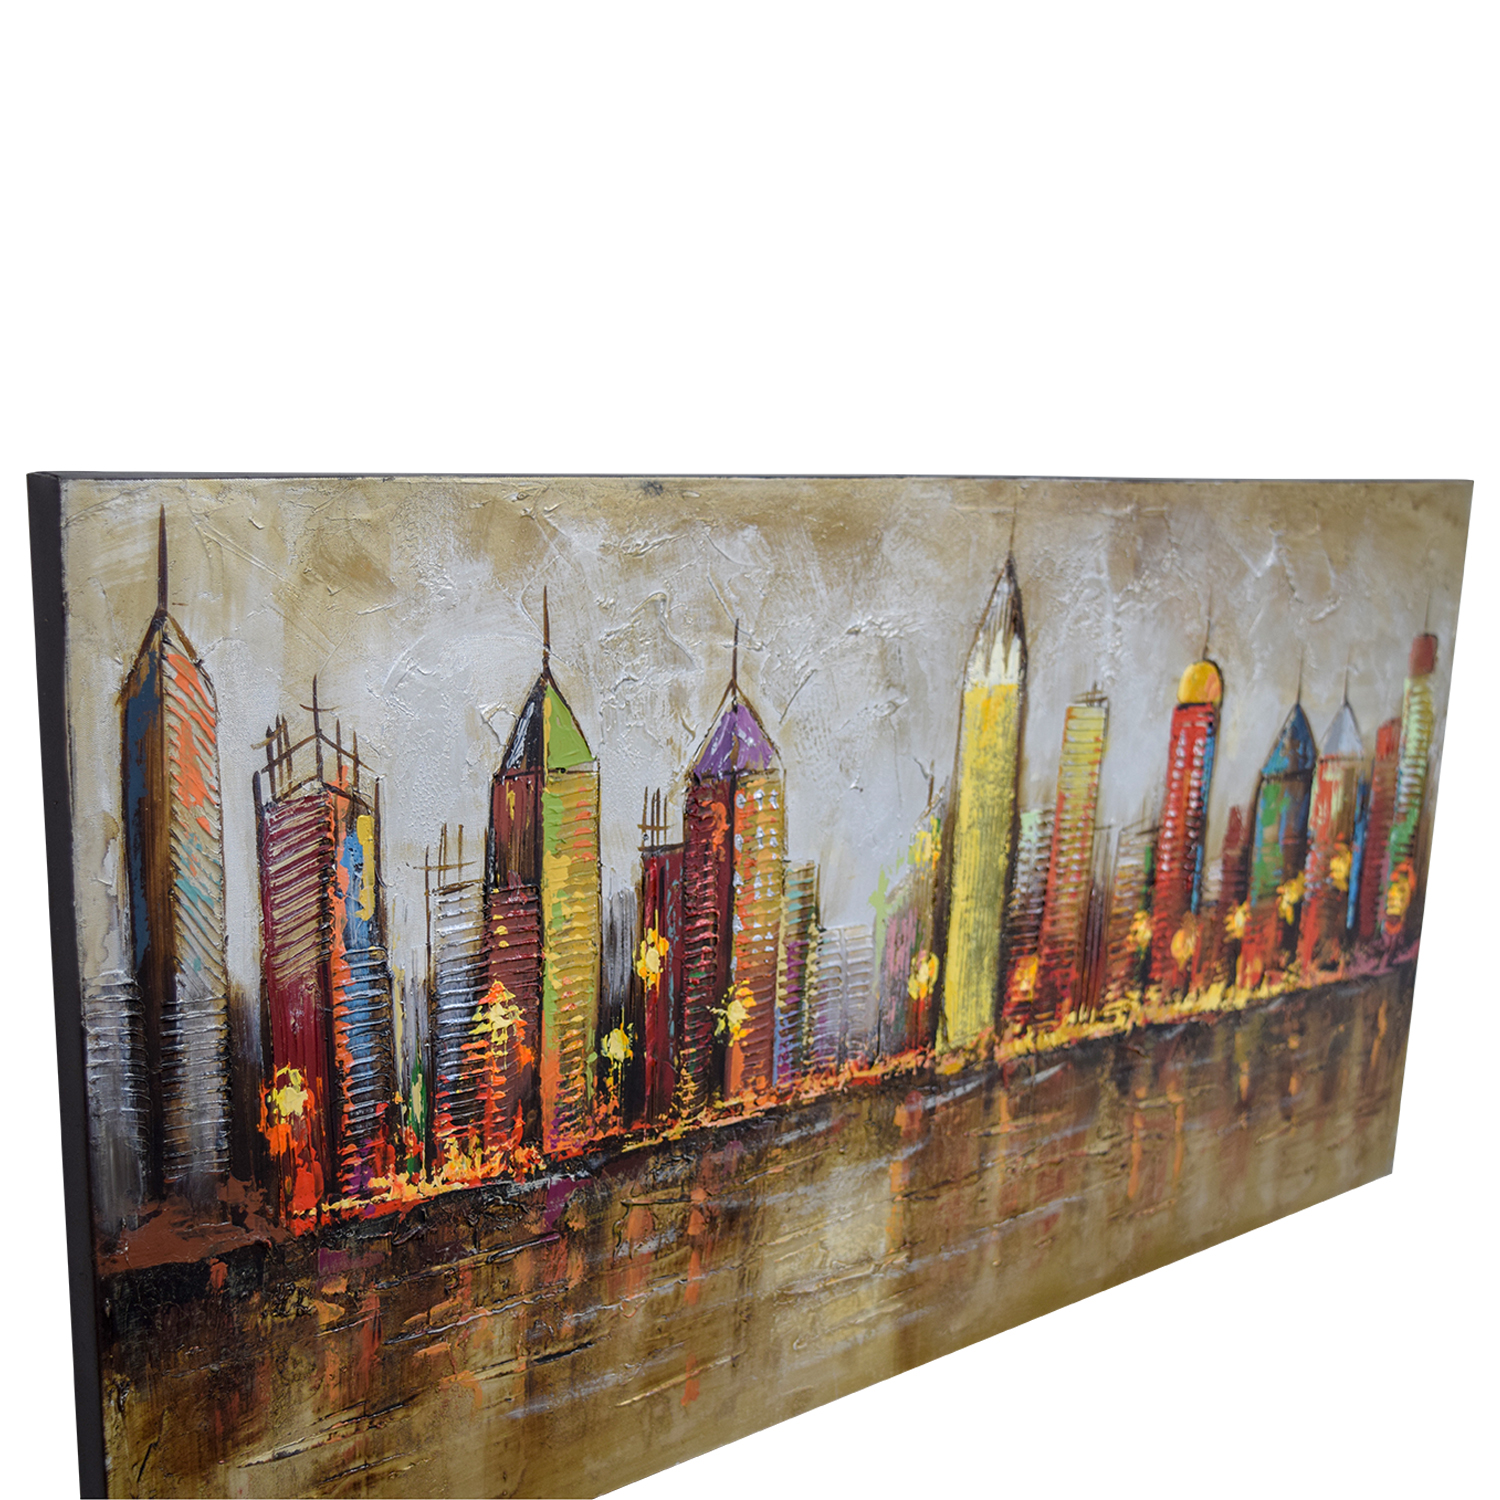 buy Pier 1 Imports Cityscape Painting Pier 1 Imports